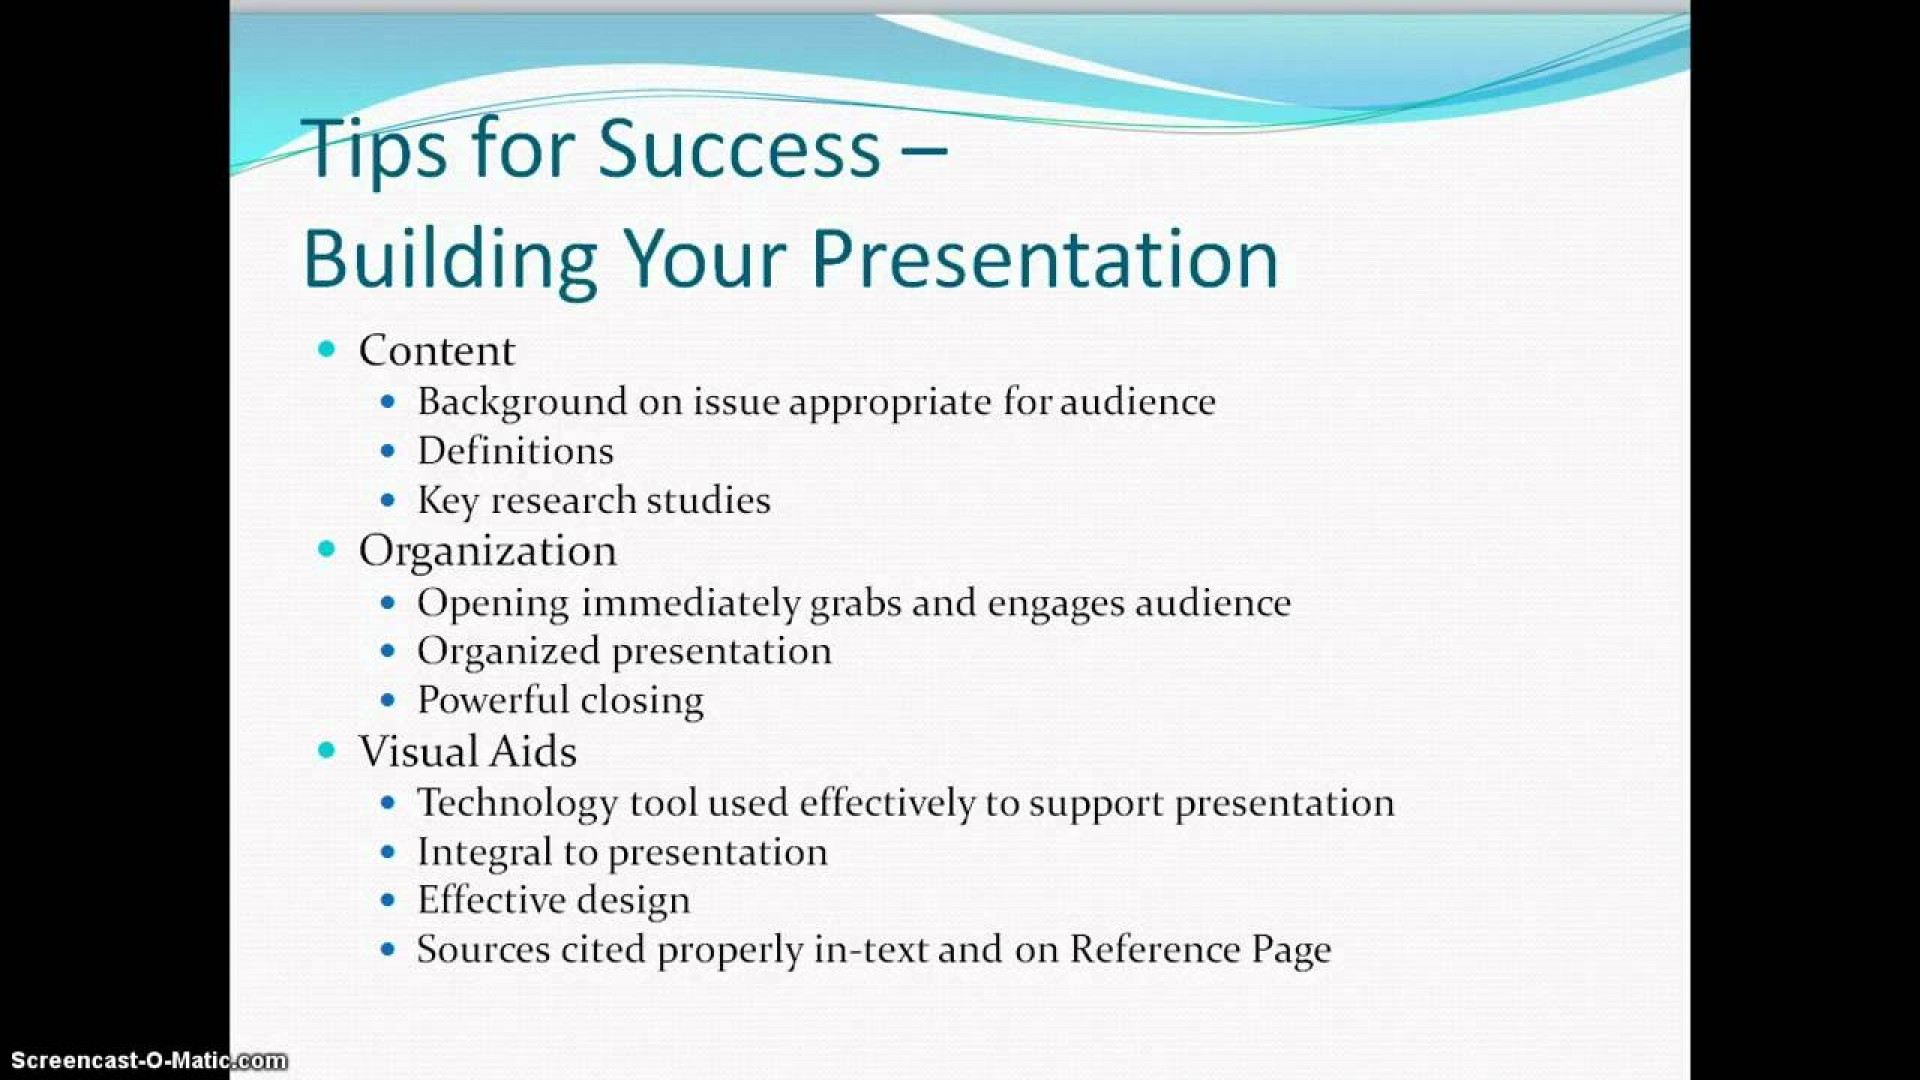 002 Research Paper How To Ppt Outstanding Publish Write Abstract For Prepare 1920